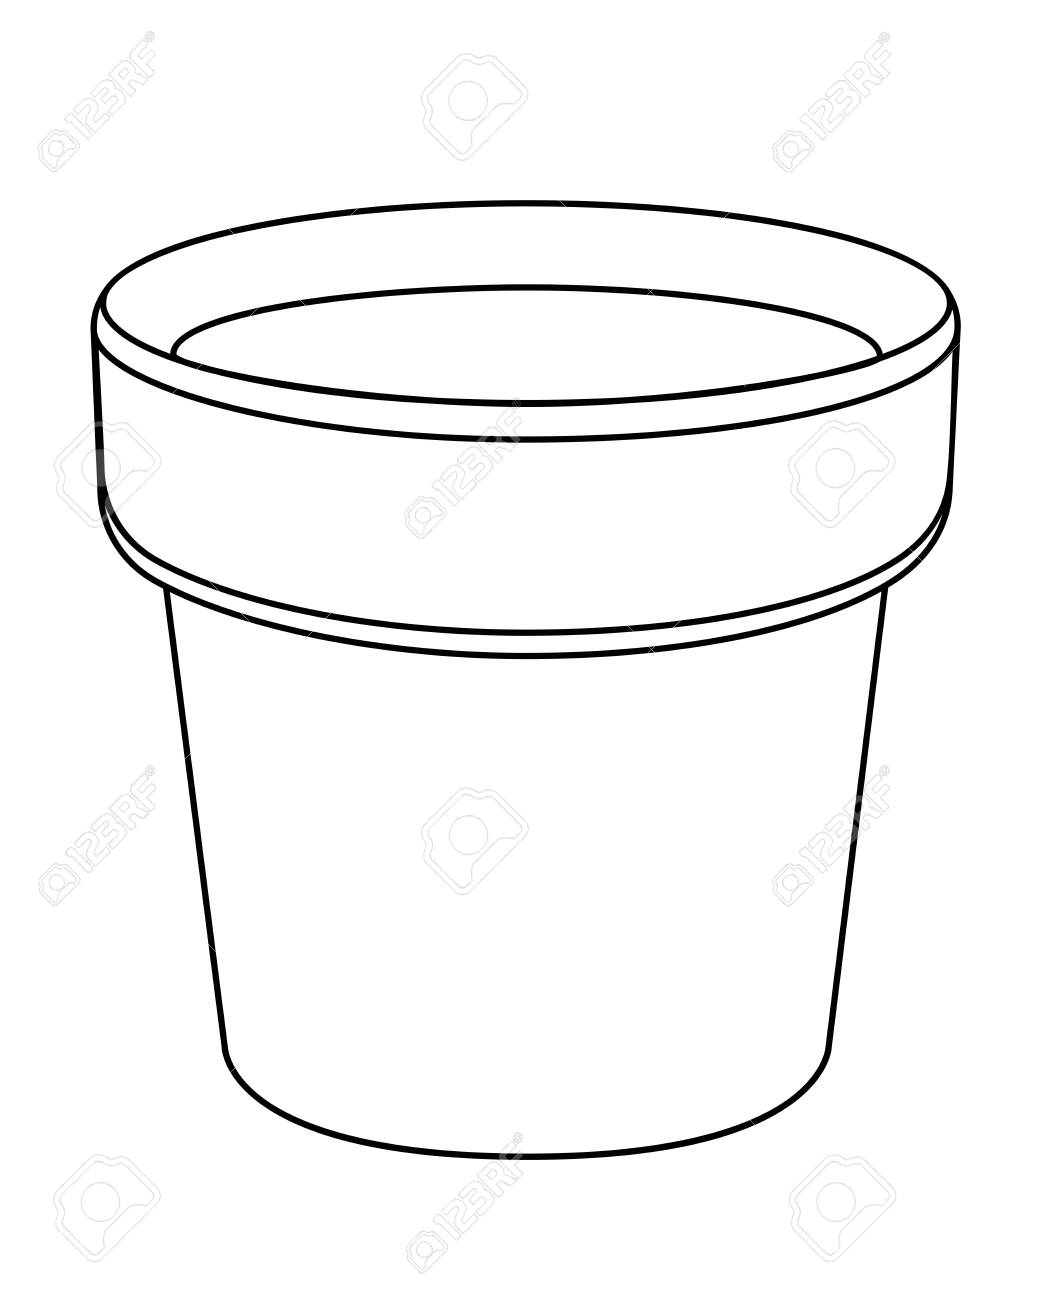 Empty Flower Pot Vector Template Cache Pot For Indoor Plants Royalty Free Cliparts Vectors And Stock Illustration Image 139822416